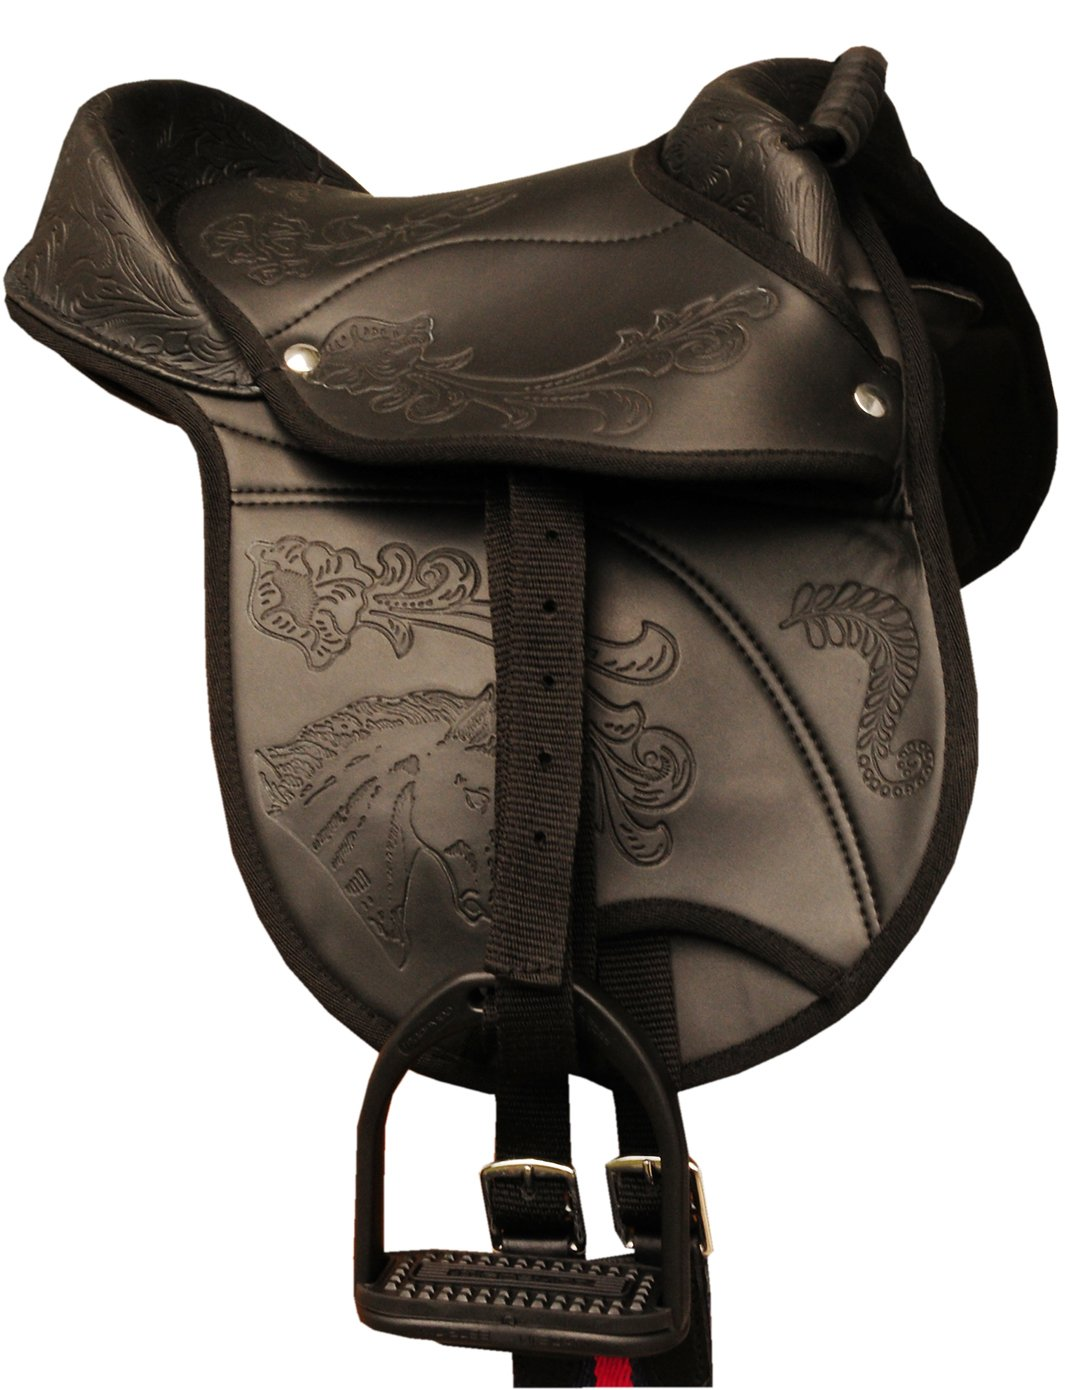 'Amka Hide Covered Pony Pad Nevio Belt and Stirrups also suitable for wooden horse pony Shetland Pony Saddle 10 Complete Outfit with Strap Black